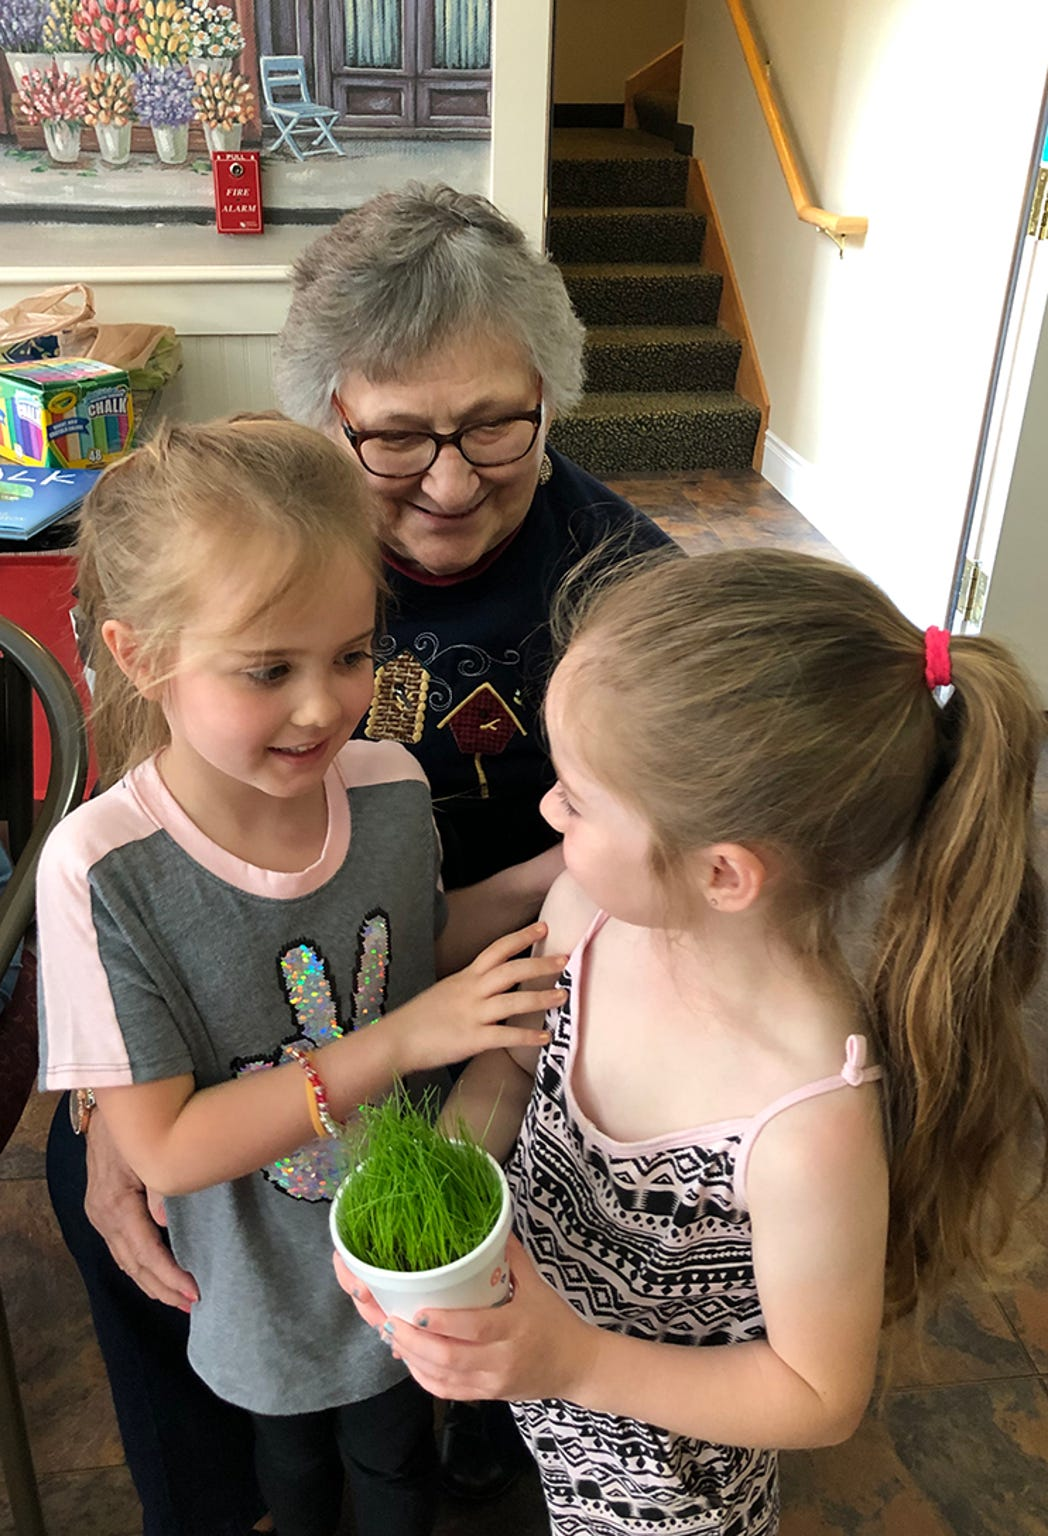 Primrose resident, Dolores, talks with Little Barnyard students, Adrianna, l, and Braylee, r, during the newest intergenerational program that Colleen Romito of Timeless Wings has coordinated in Zanesville.